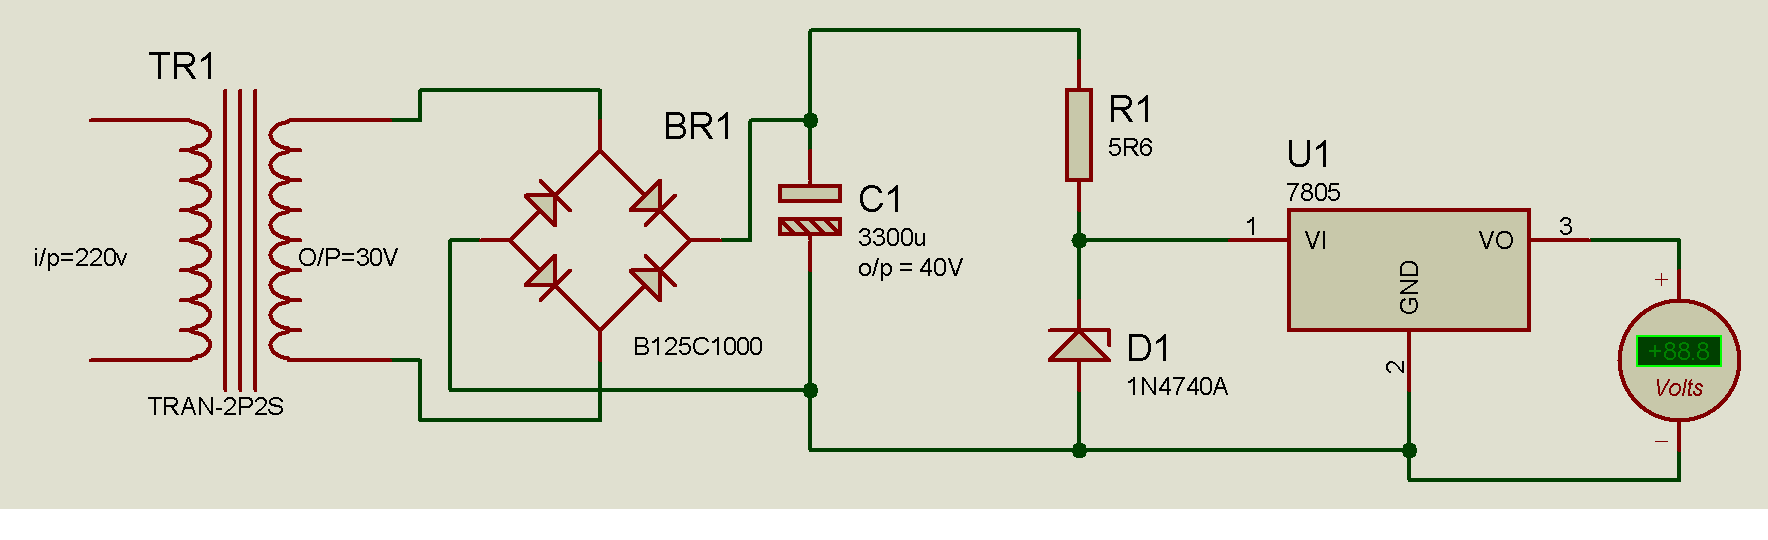 When Connected The Voltage Divider Network To 7805 Electronics Forum Gt Solved Proteus Circuit Simulation Issue 2 1331041547